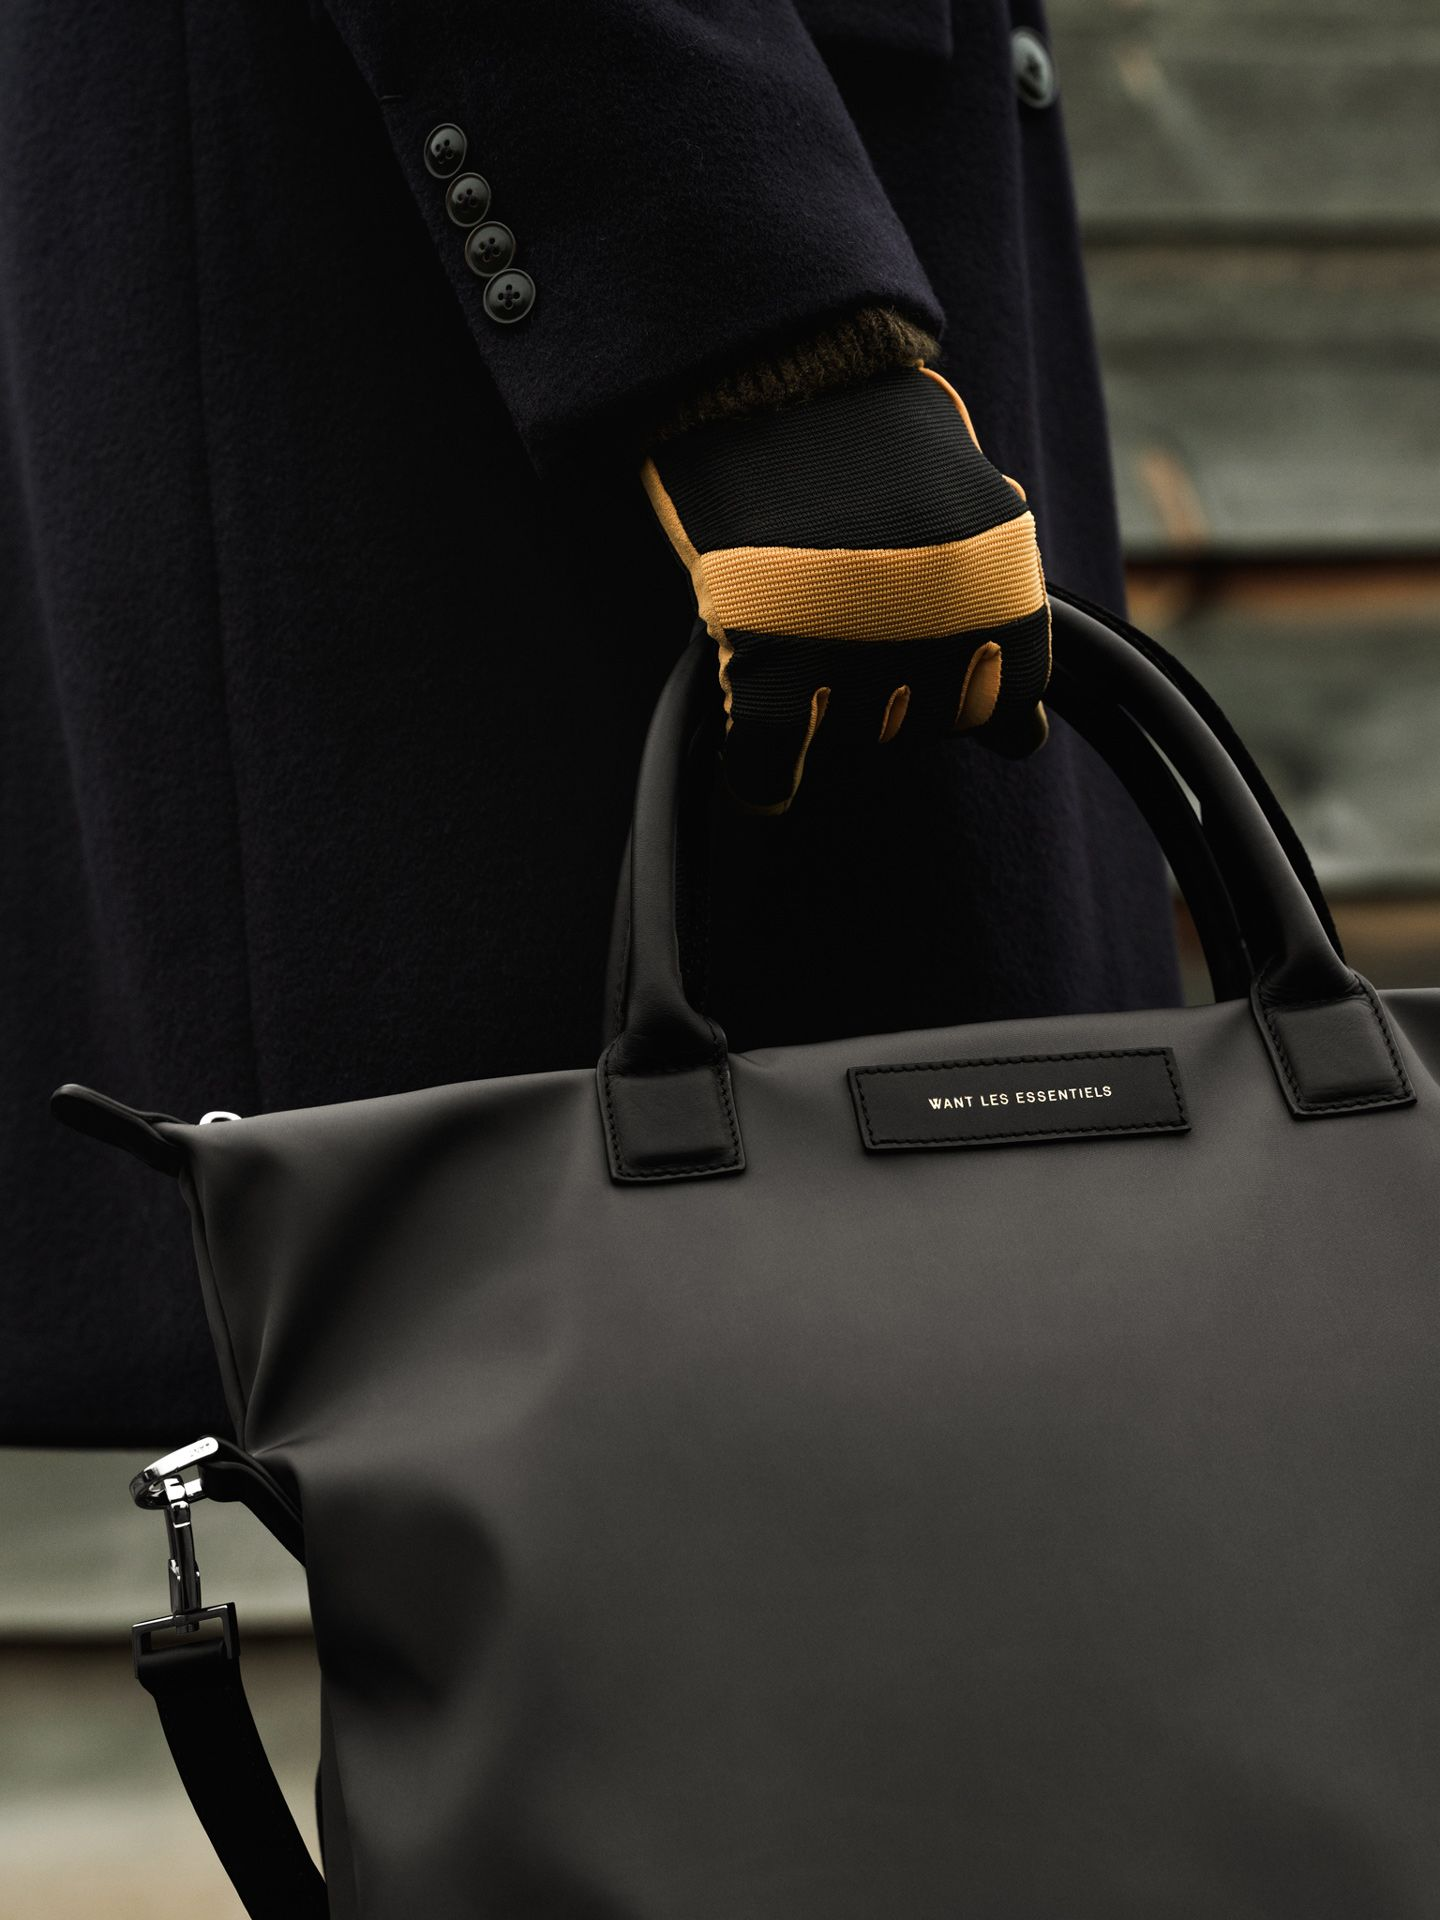 hand wearing yellow detailed glove holding bag photographed by Alexi Hobbs for Want Les Essentiels pre-Autumn Winter 2019 collection